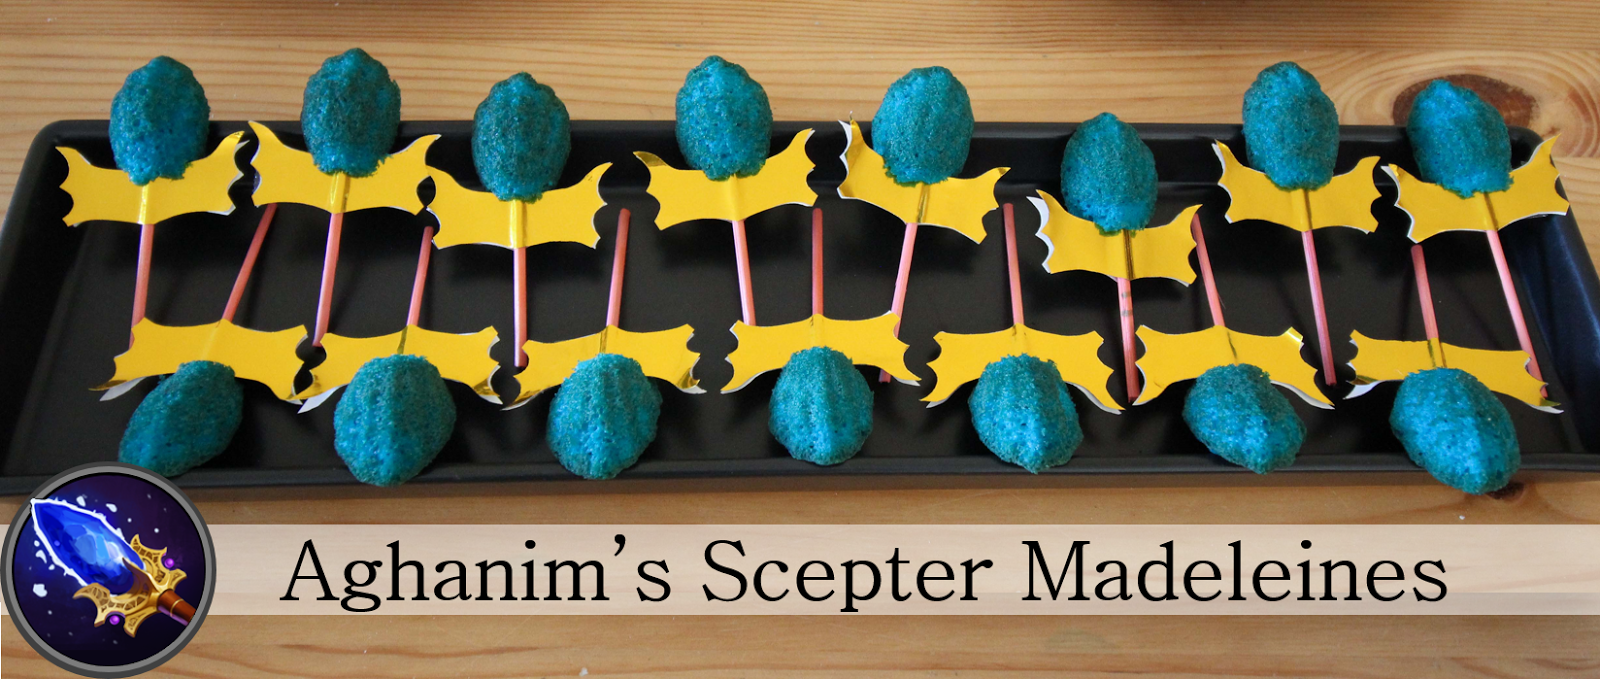 Blue lemon madeleines on decorated kabob sticks look like dota 2 aghanim's scepters.